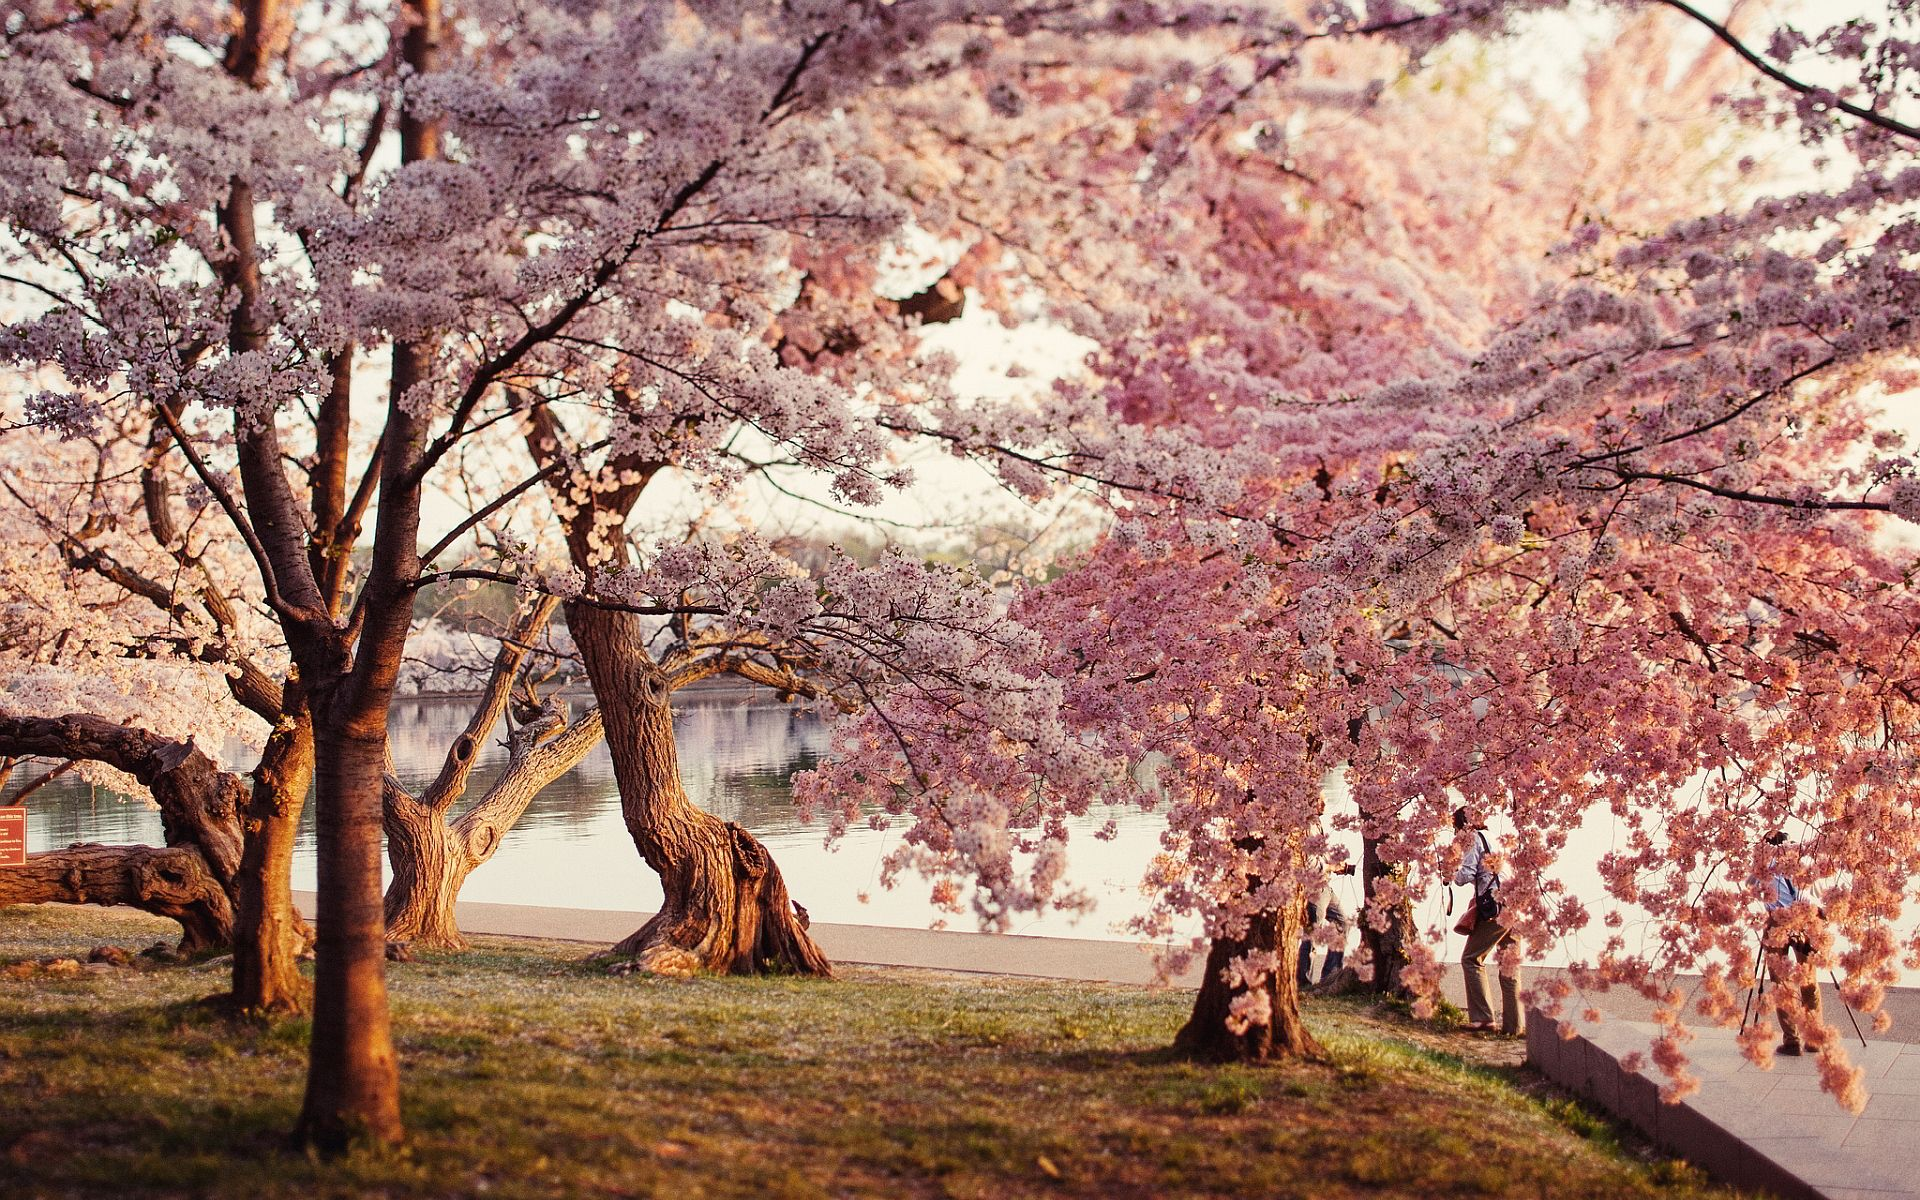 Japanese Cherry Blossom Garden Wallpaper Photo With High Resolution 1920x1200 Px 168 MB